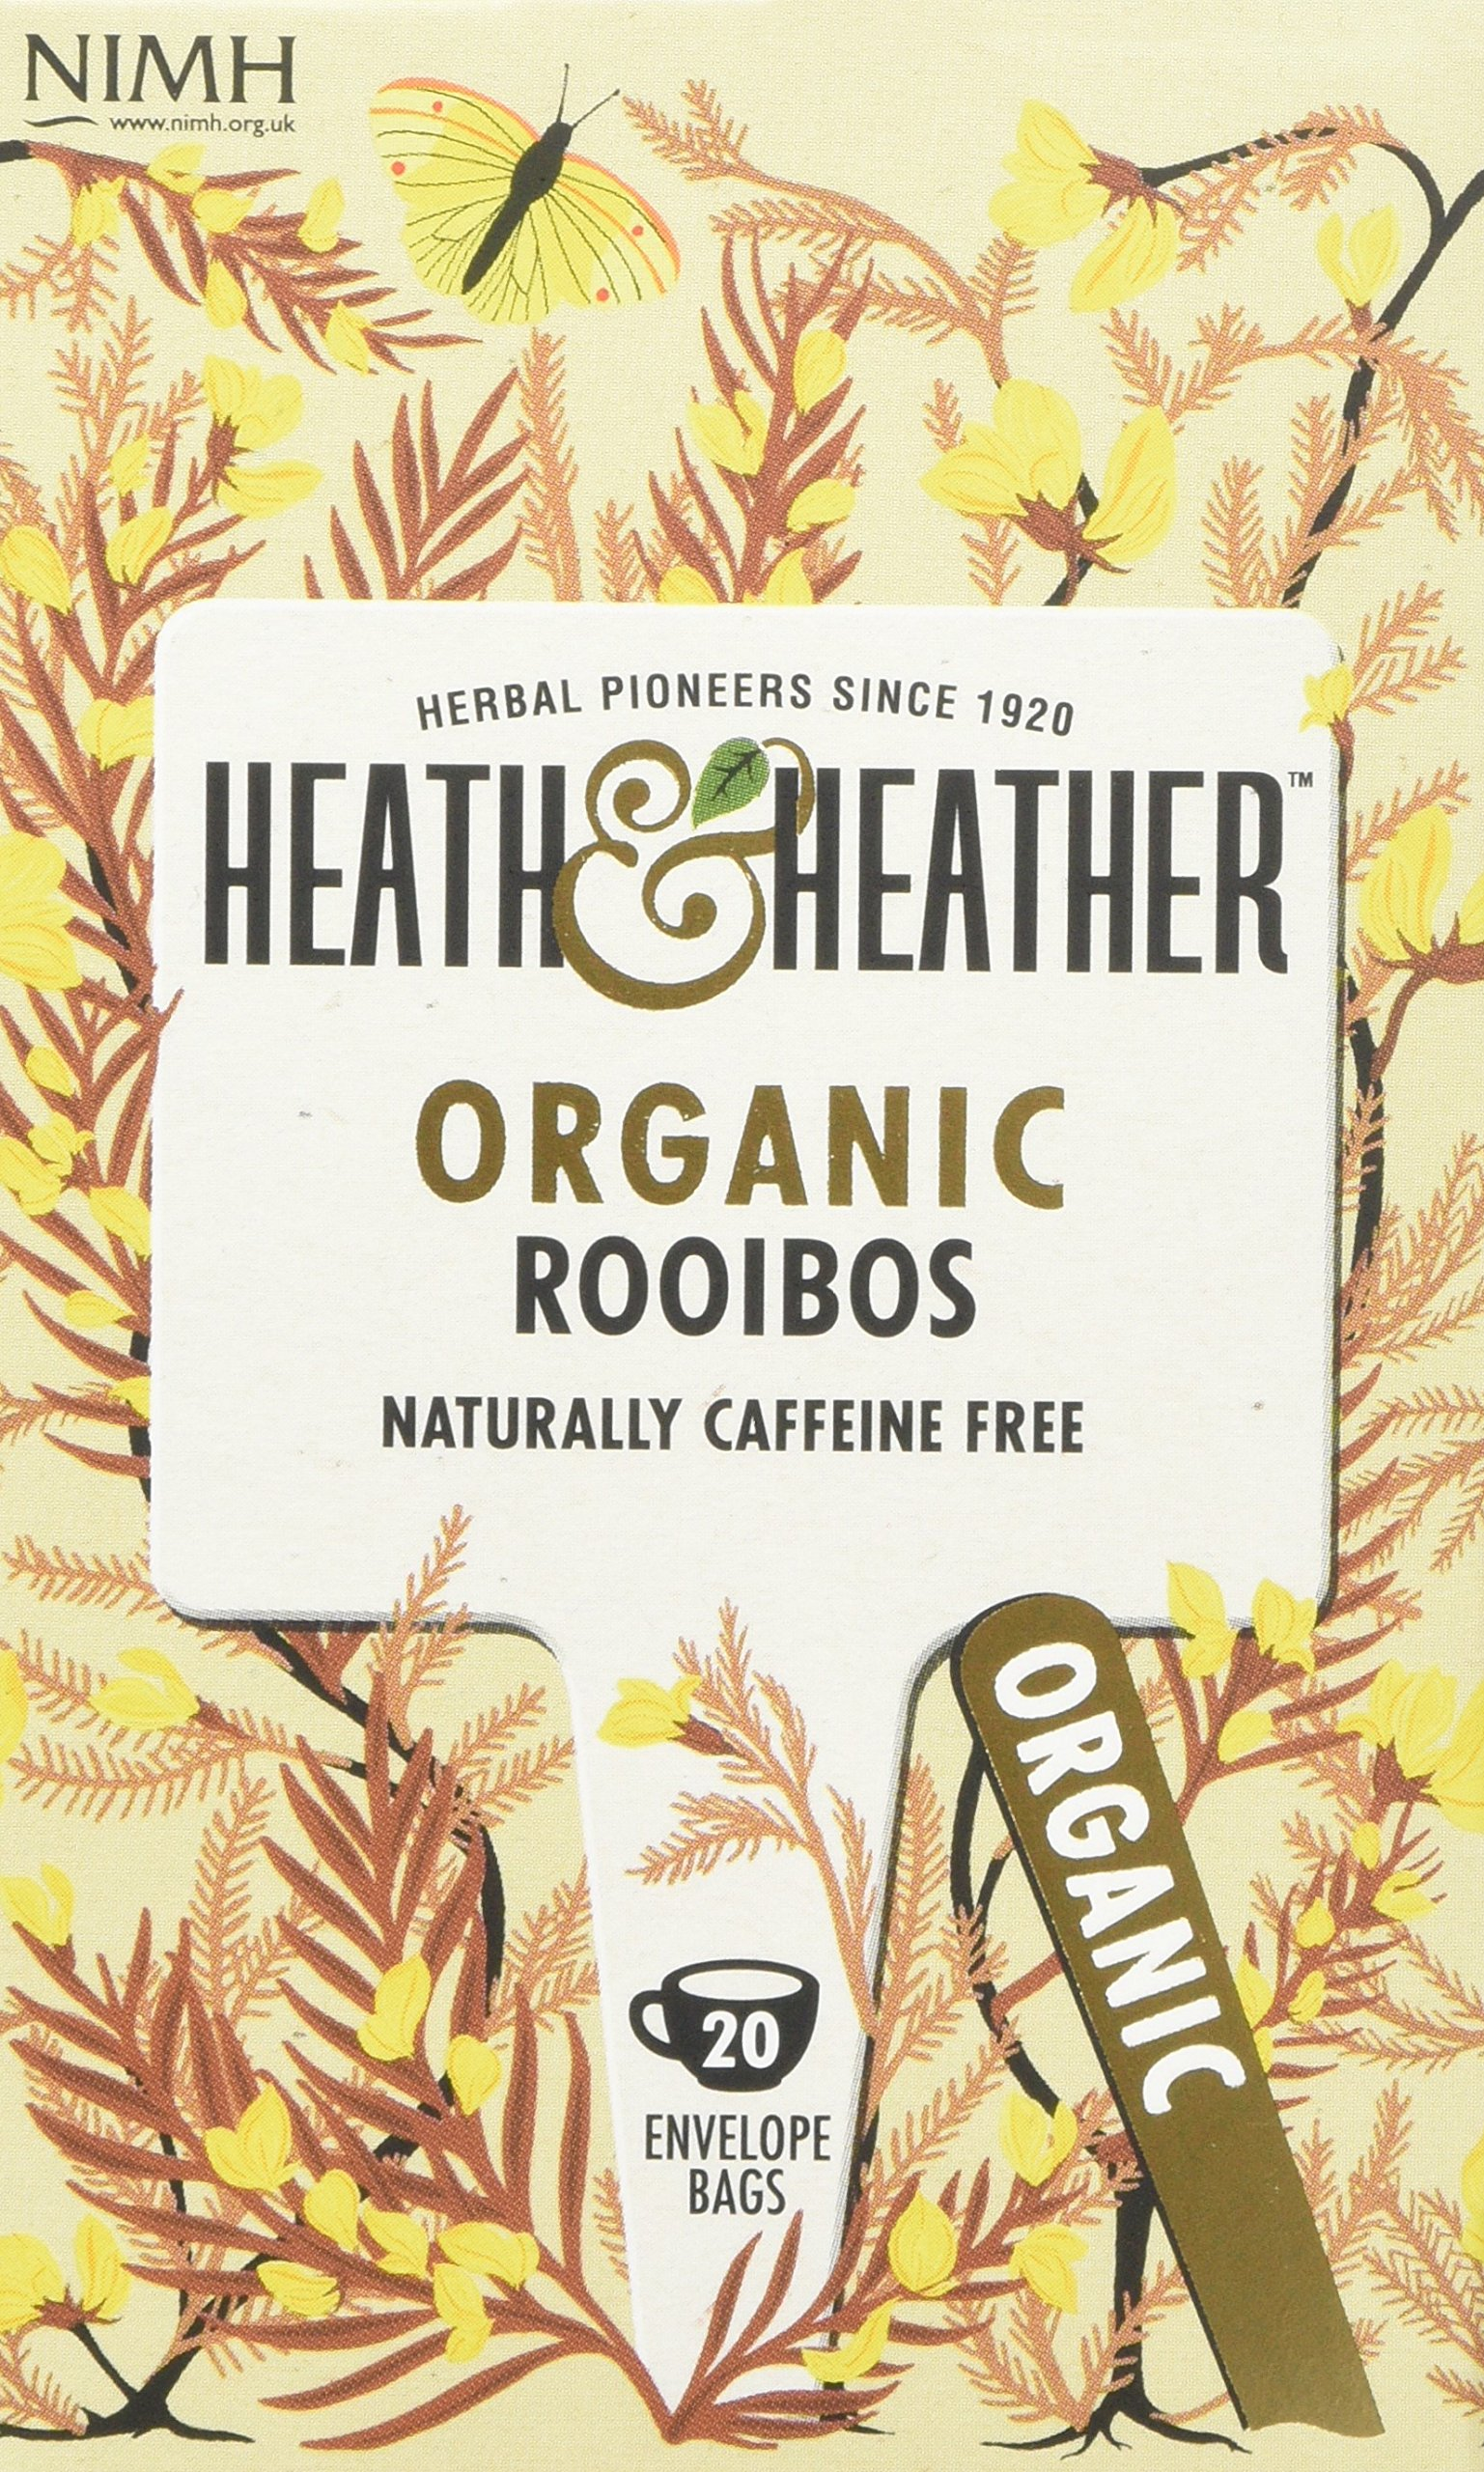 Heath & Heather organic rooibos tea bundle (soil association) (rooibos tea) (6 packs of 20 bags) (120 bags) (brews in 3-5 minutes)